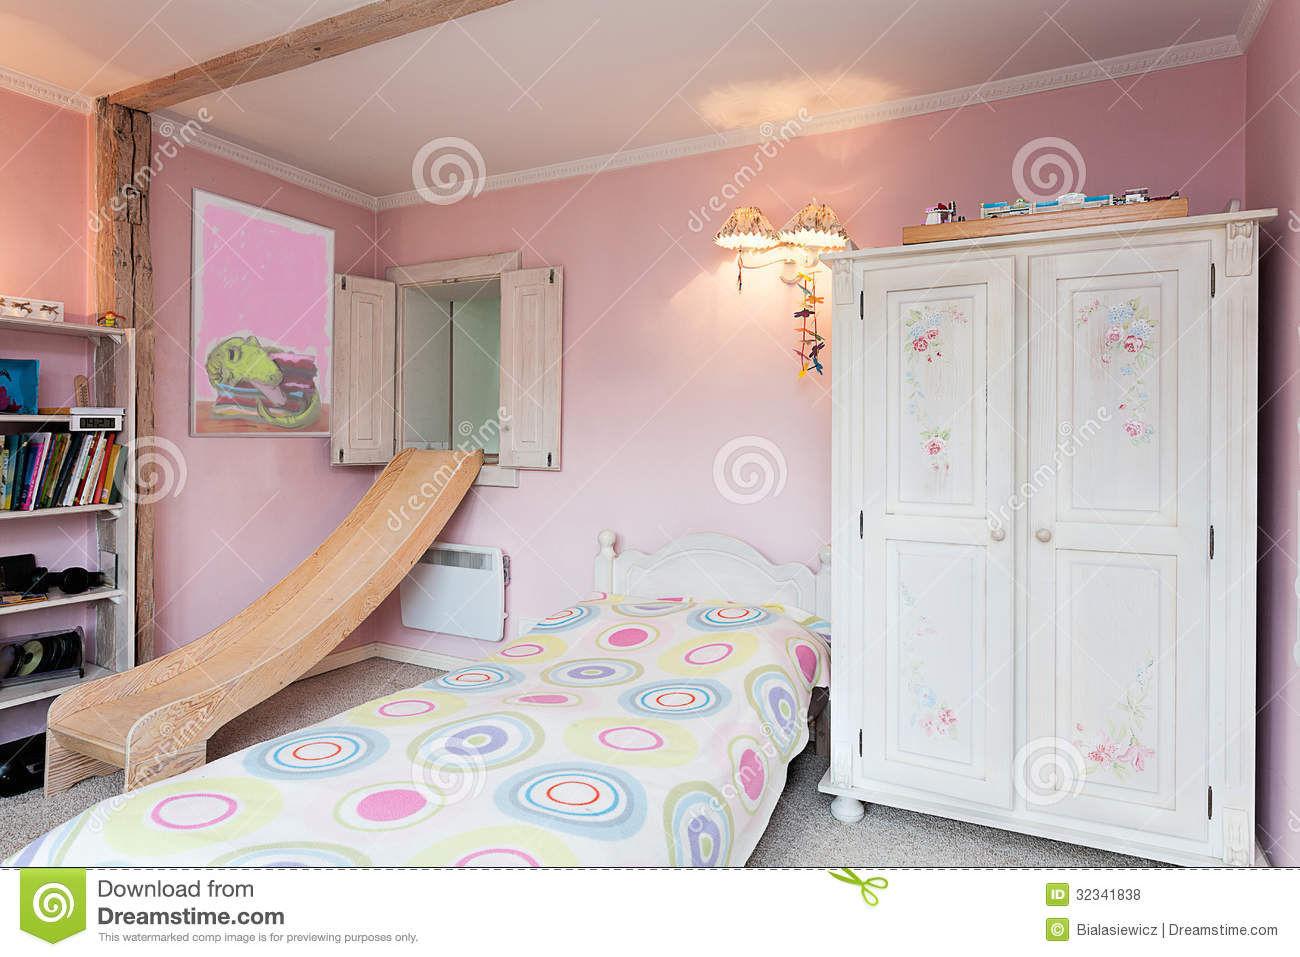 Vintage Mansion Girl s Room Royalty Free Stock s Image